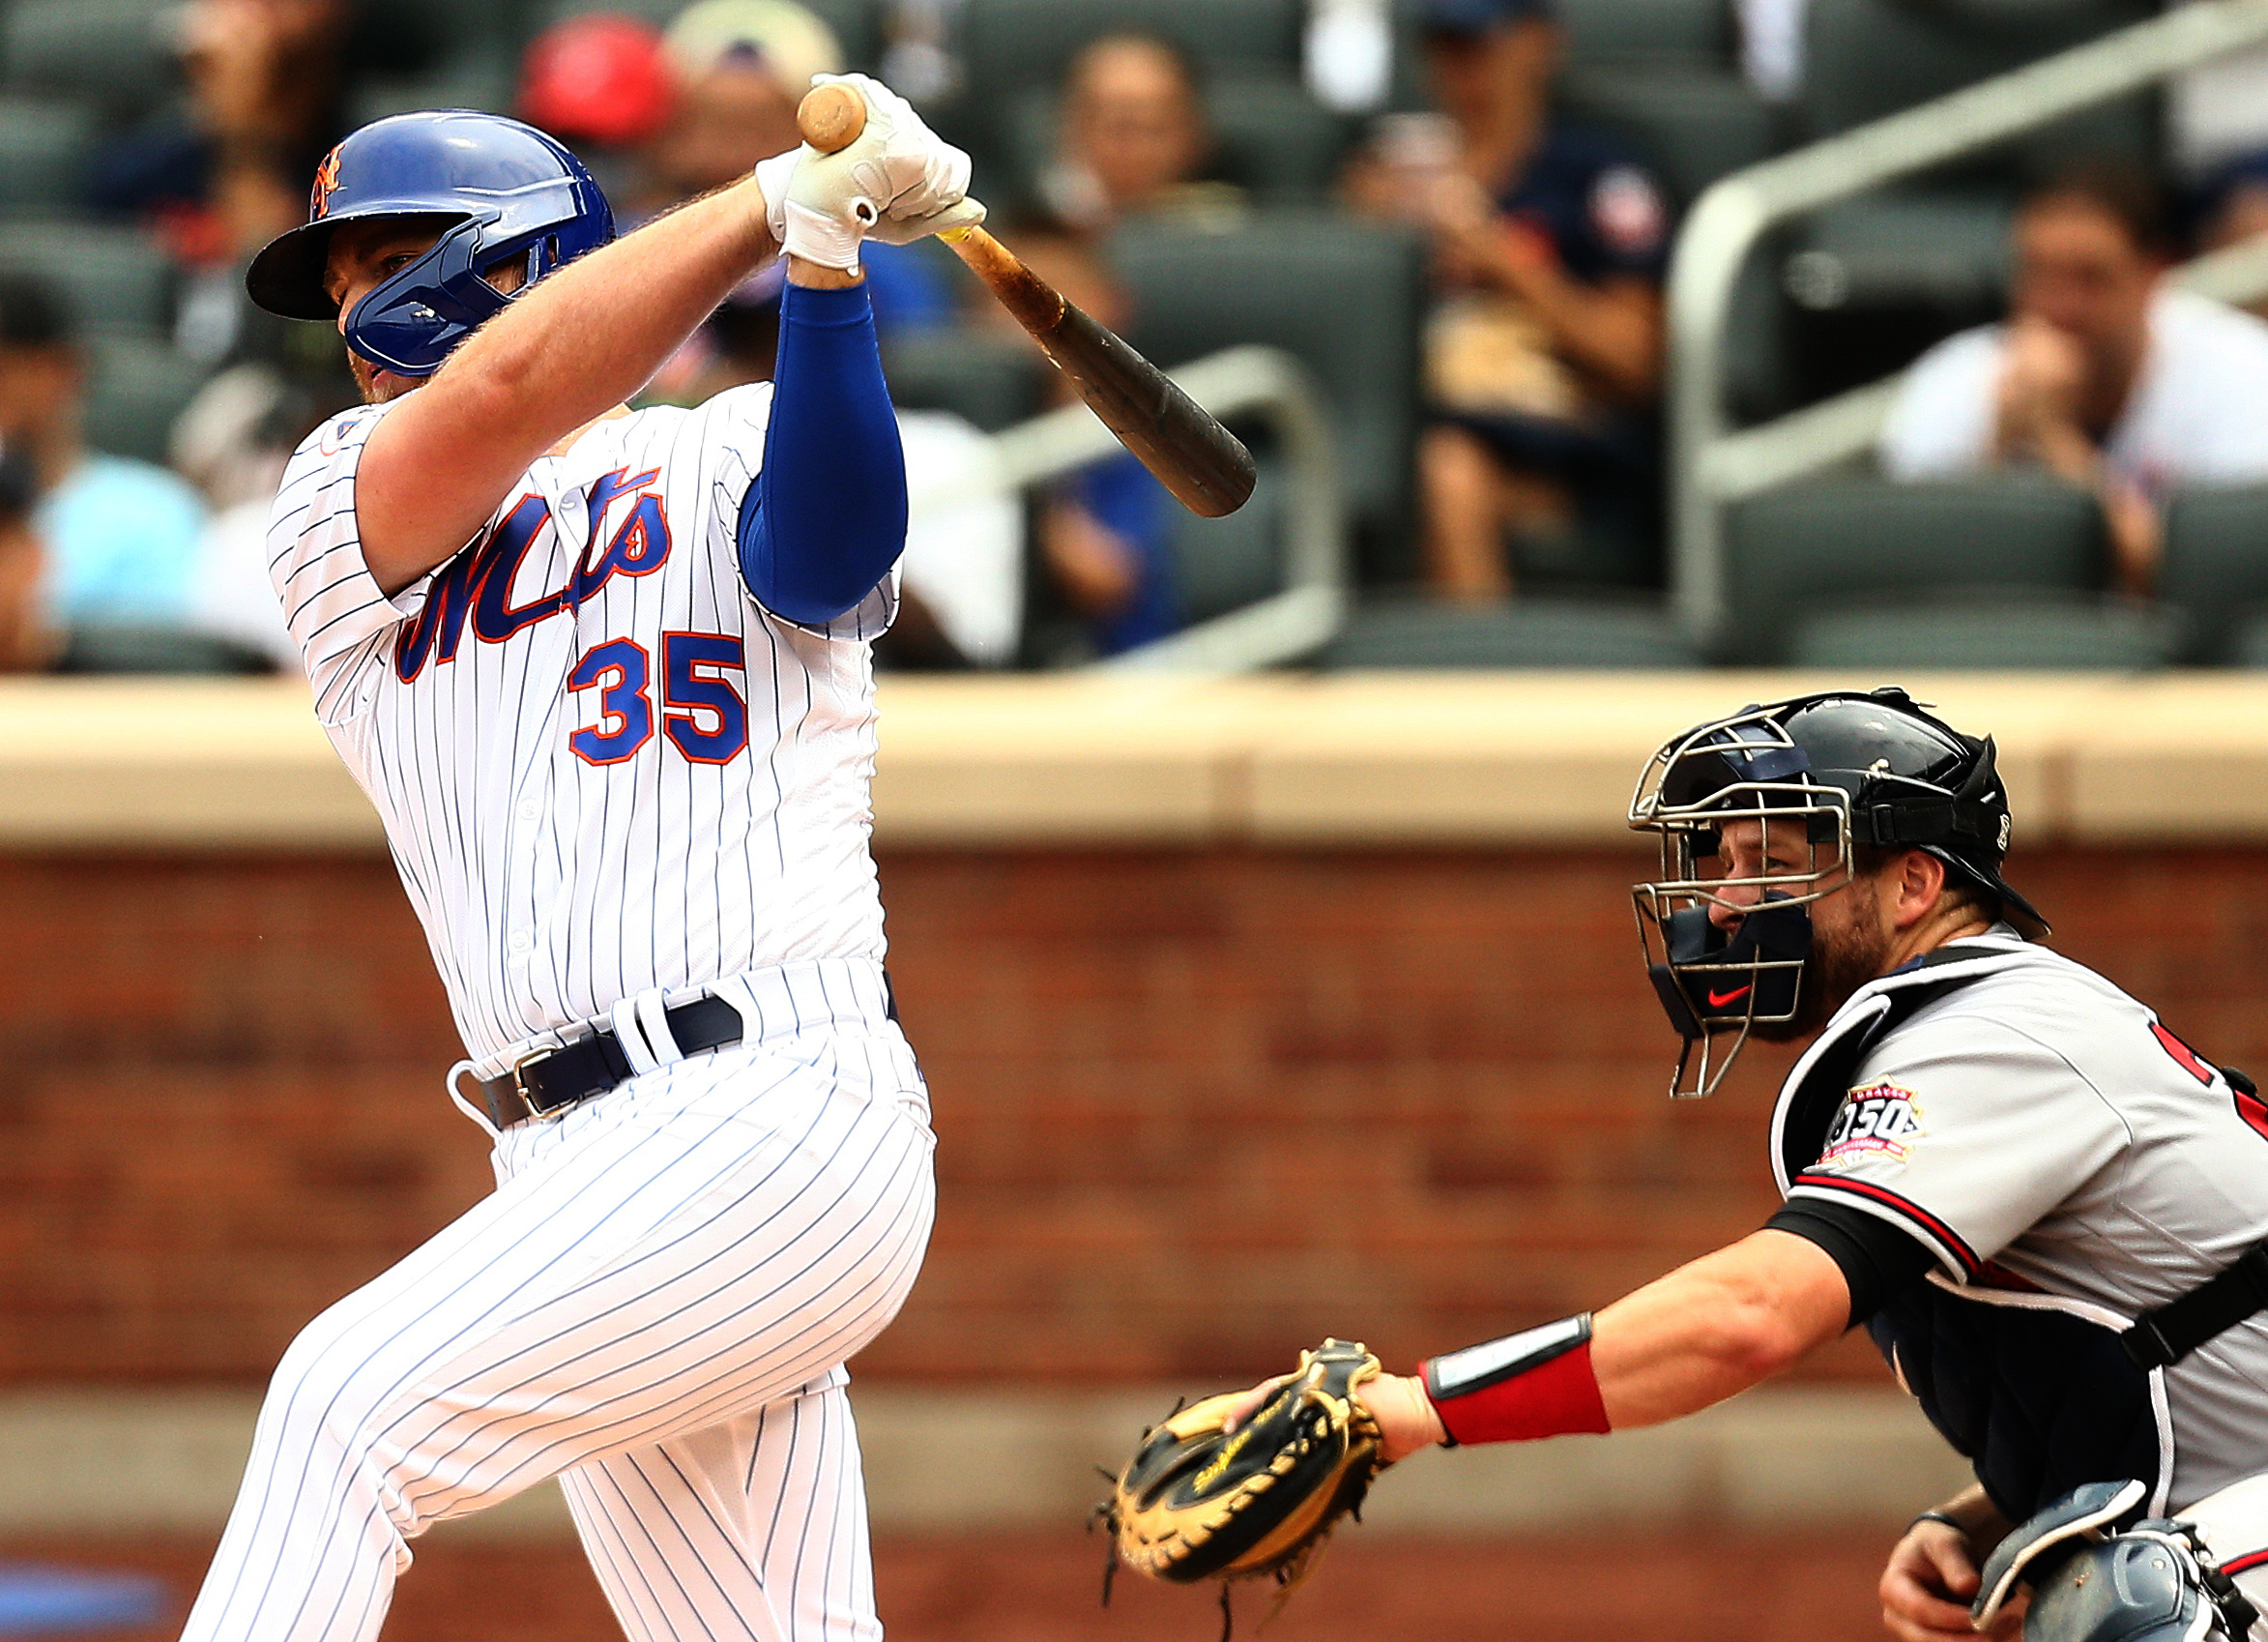 New York Mets add Javier Baez as they remain in first place through July